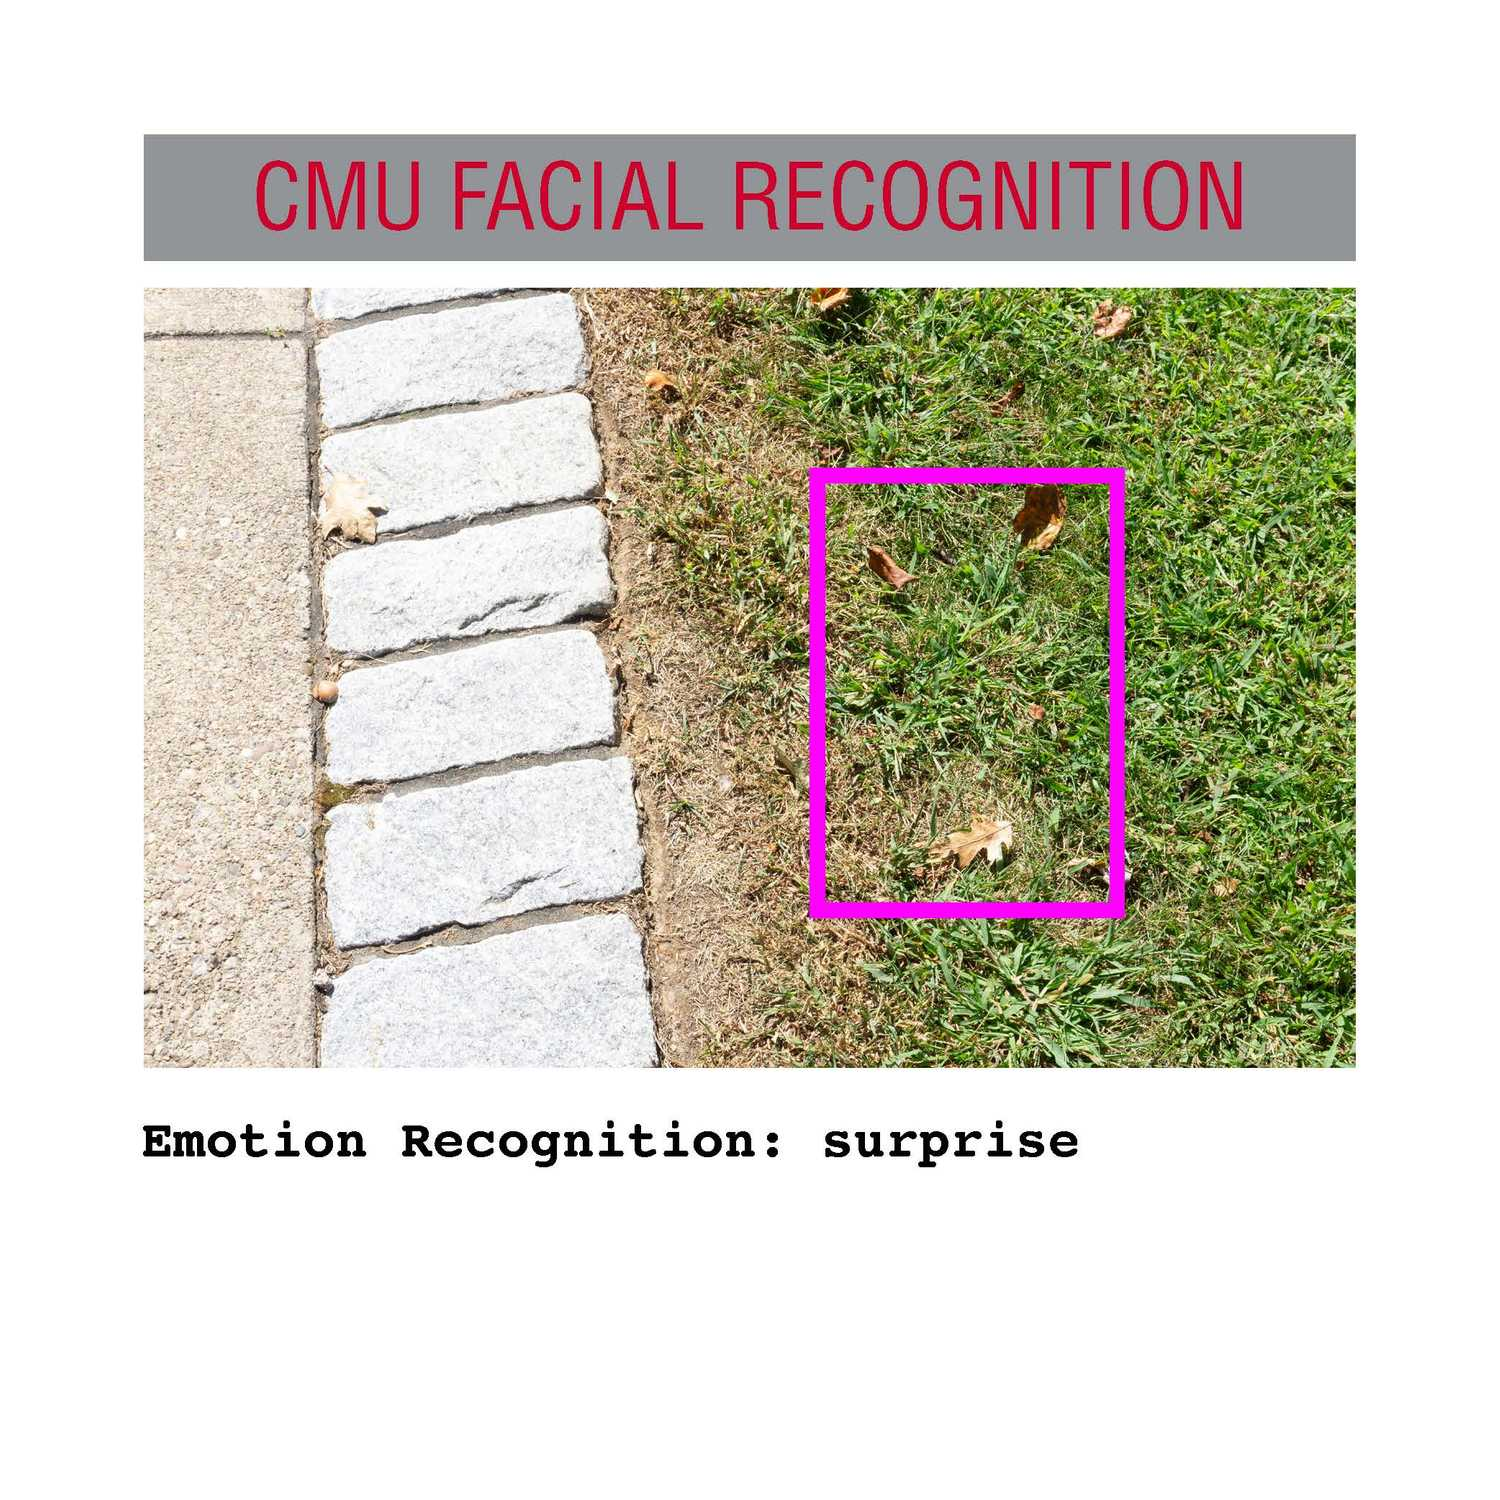 facial recognition Page 32